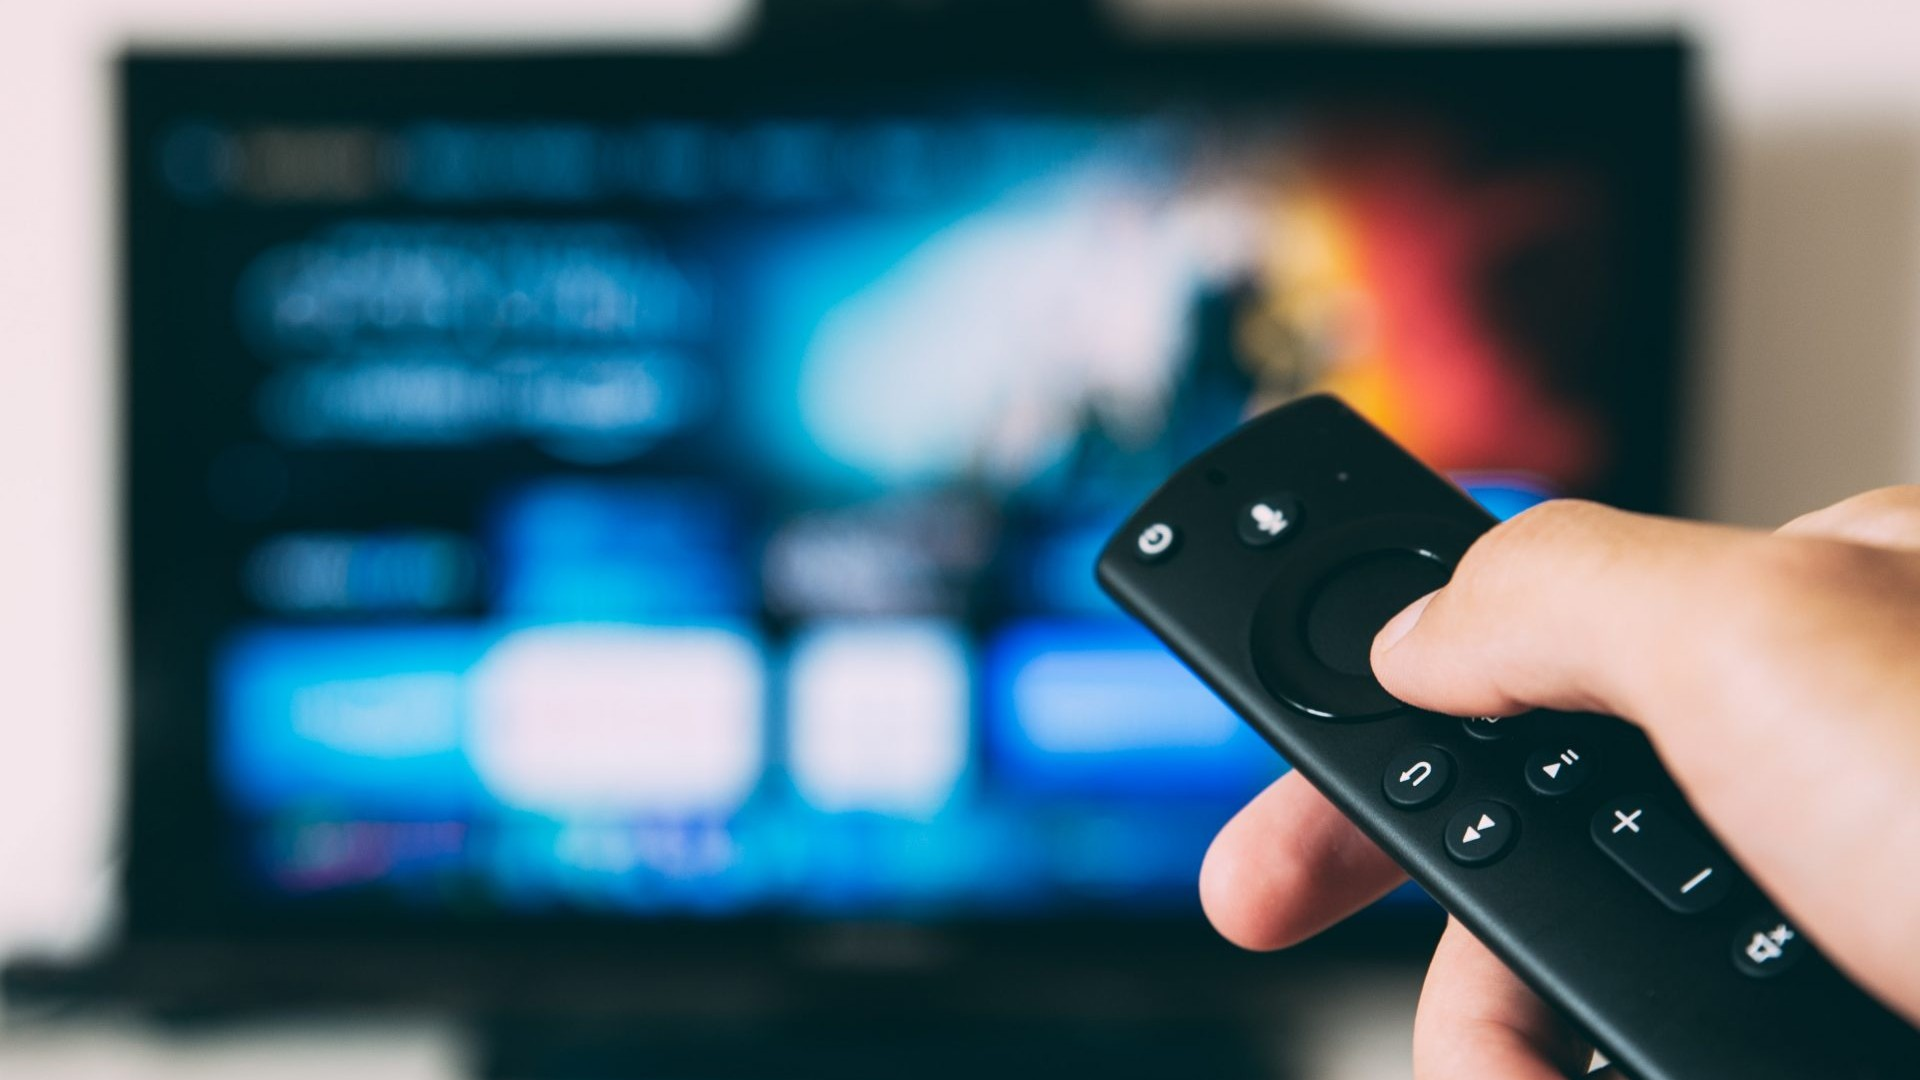 Global TV Market Forecast by Region (2020-2025F) - Counterpoint Research